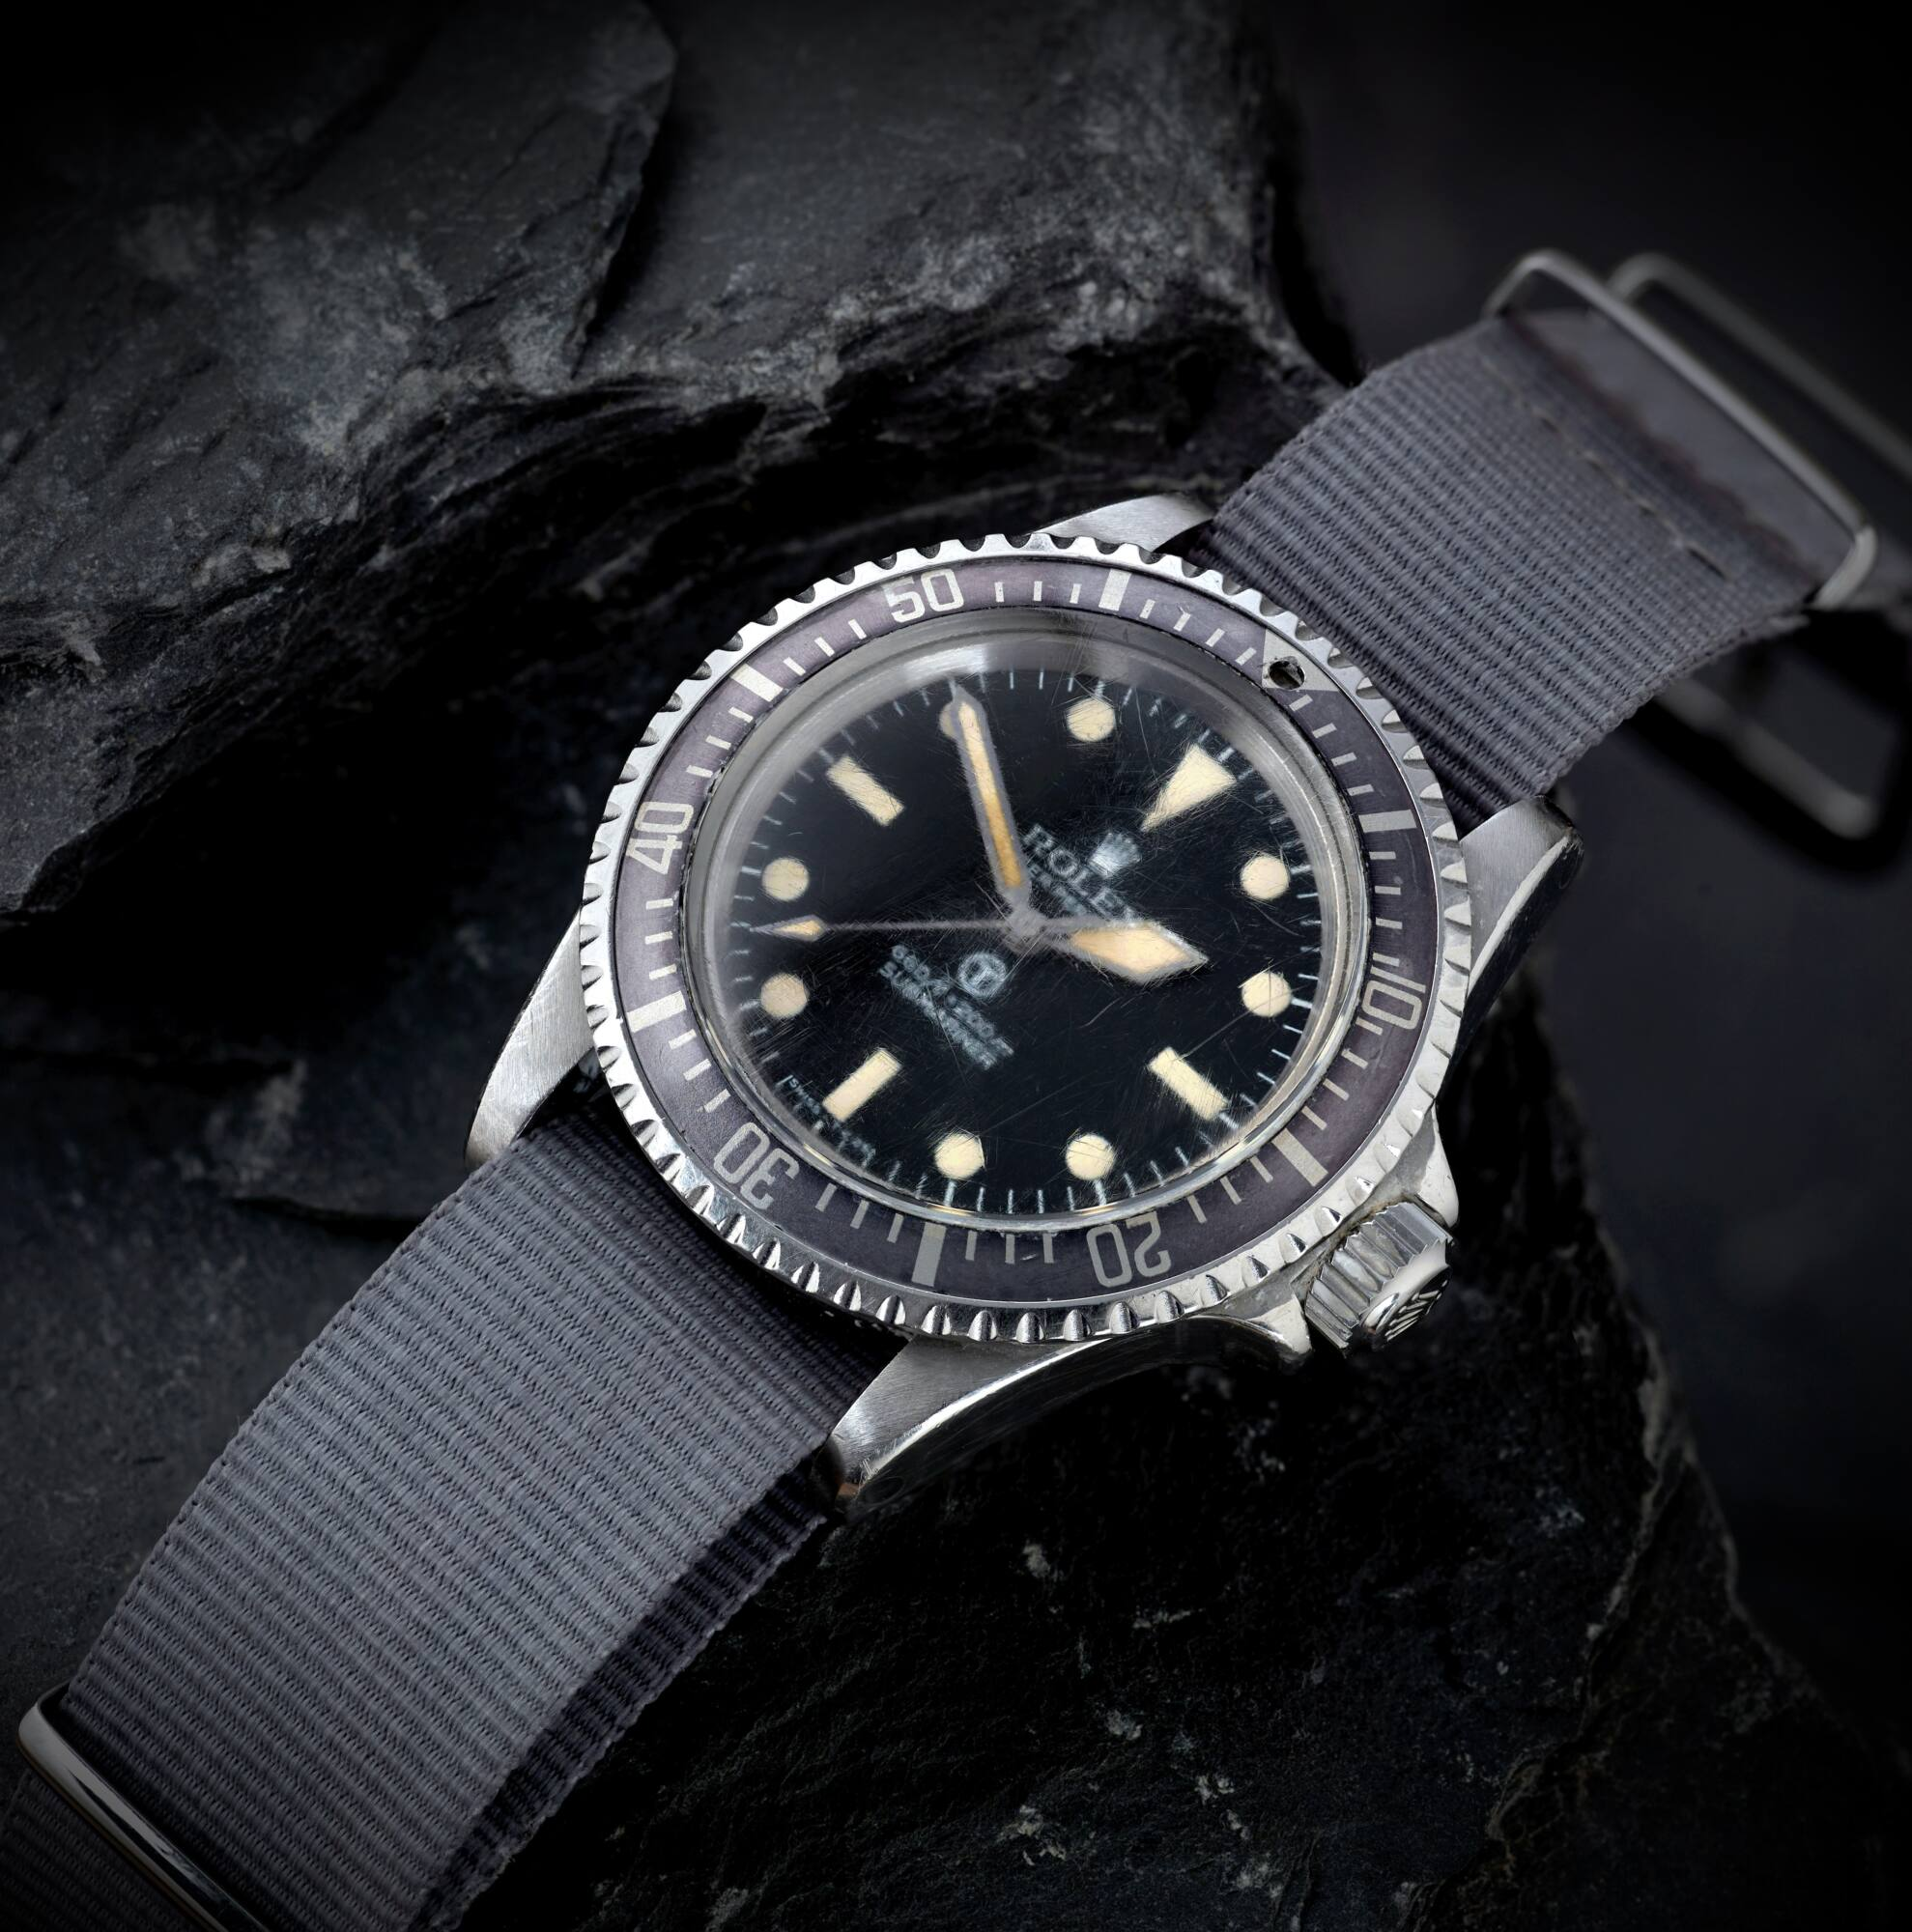 Breaking News, Rolex 'MilSub' sells for over £174,000 smashing Fellows' house record!! - MondaniWeb